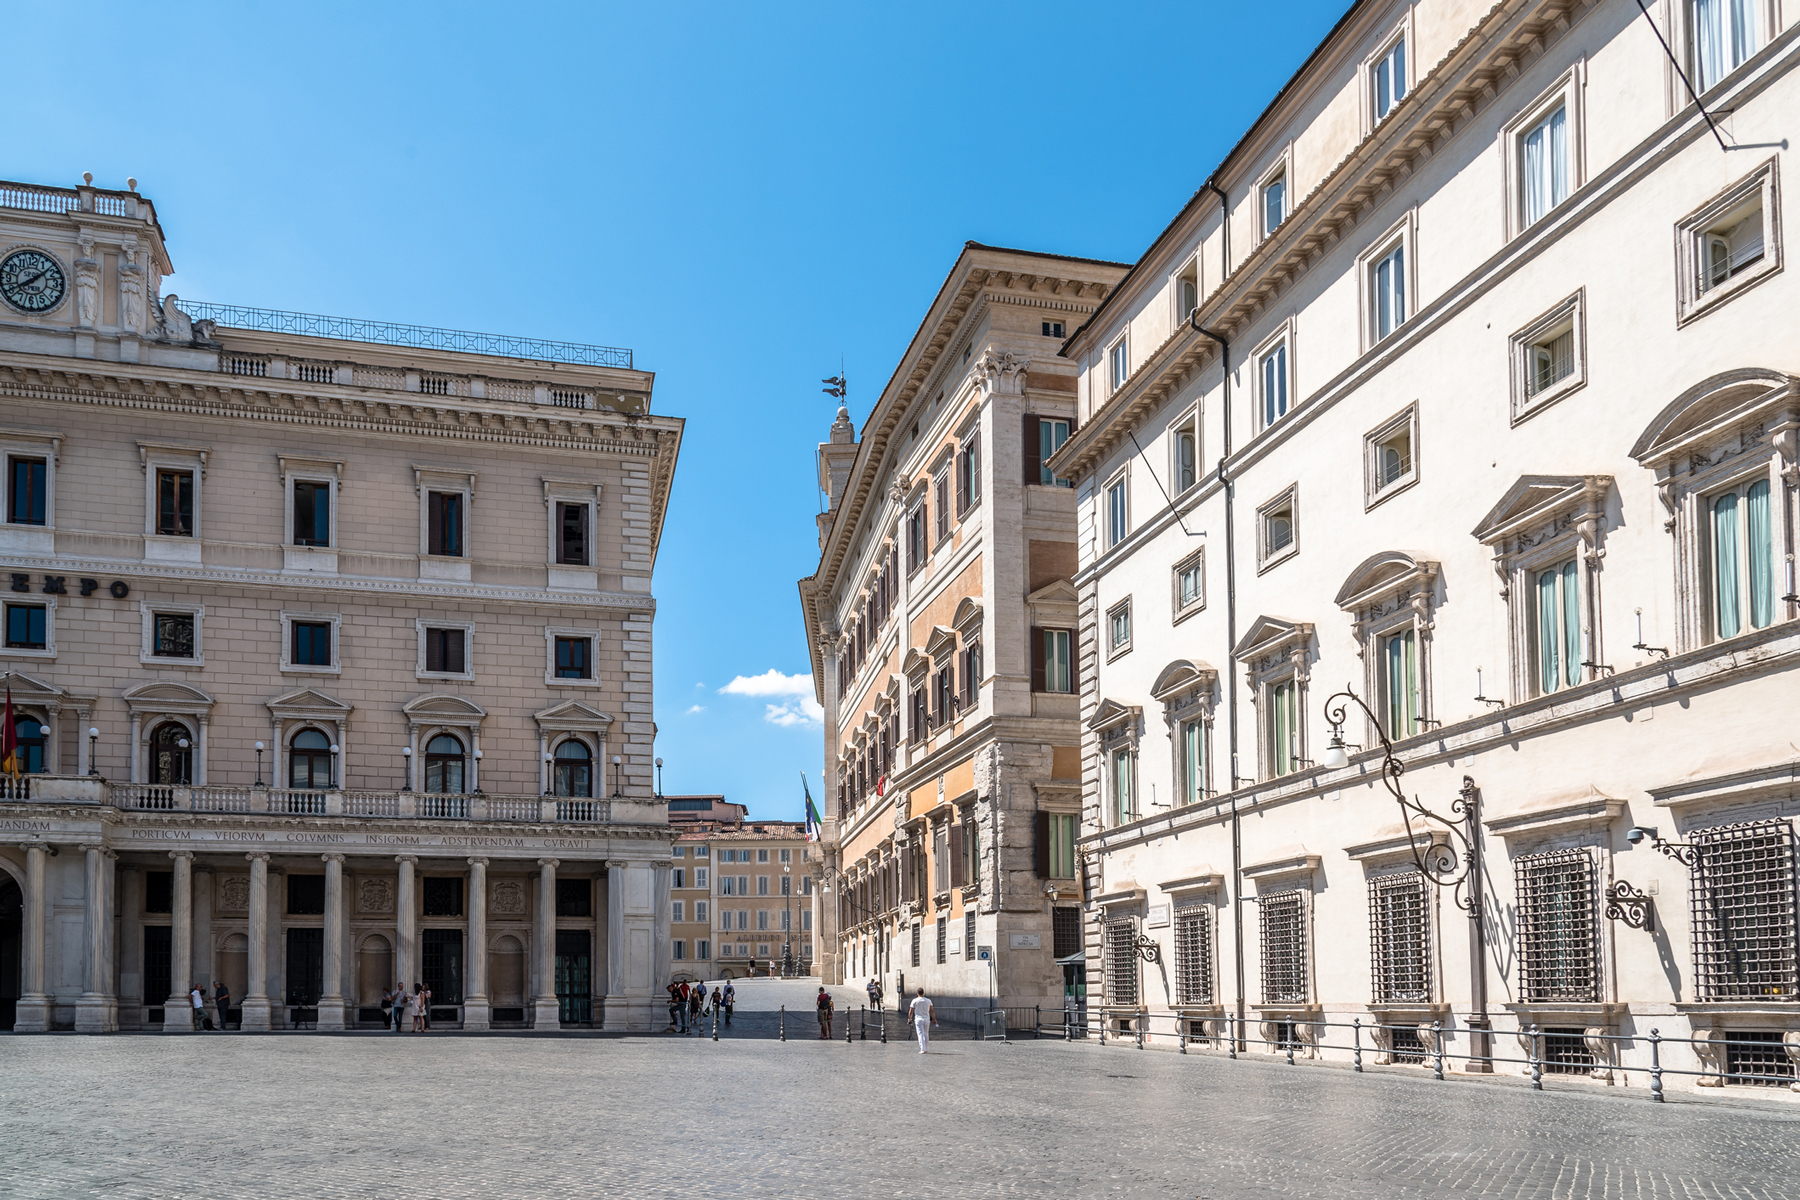 View of Piazza Colonna in historical city centre of Rome